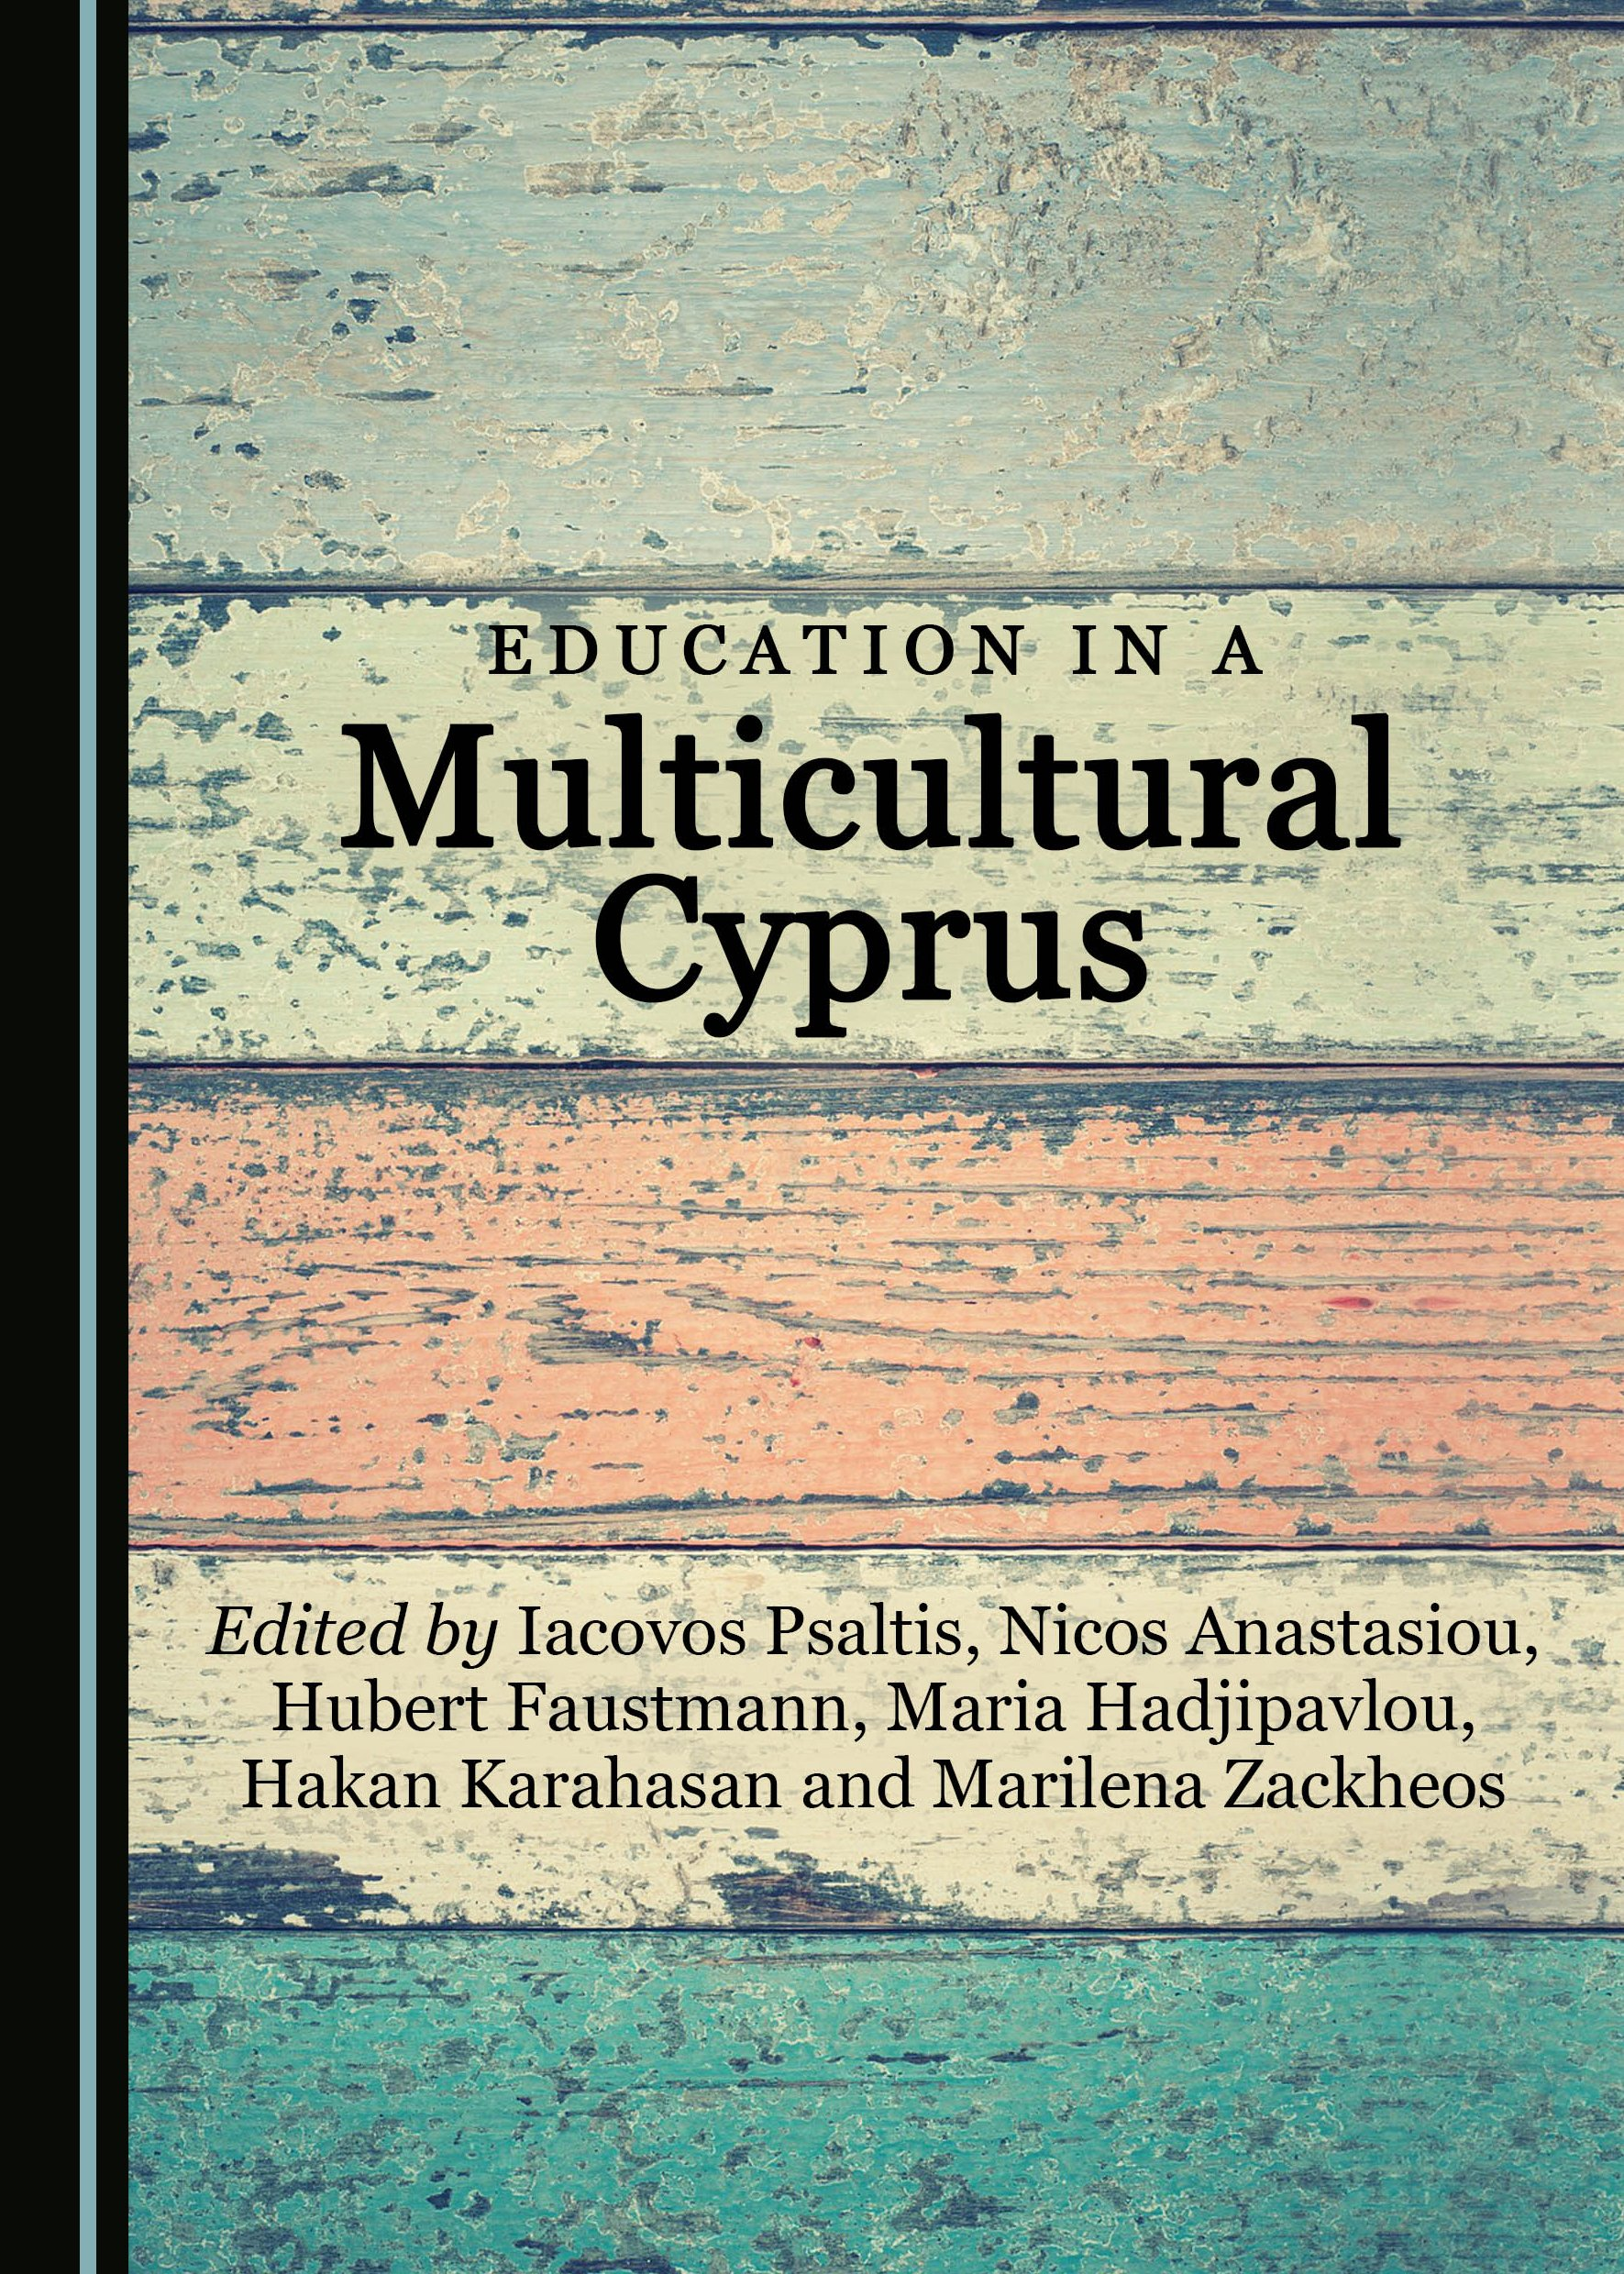 Education in a Multicultural Cyprus